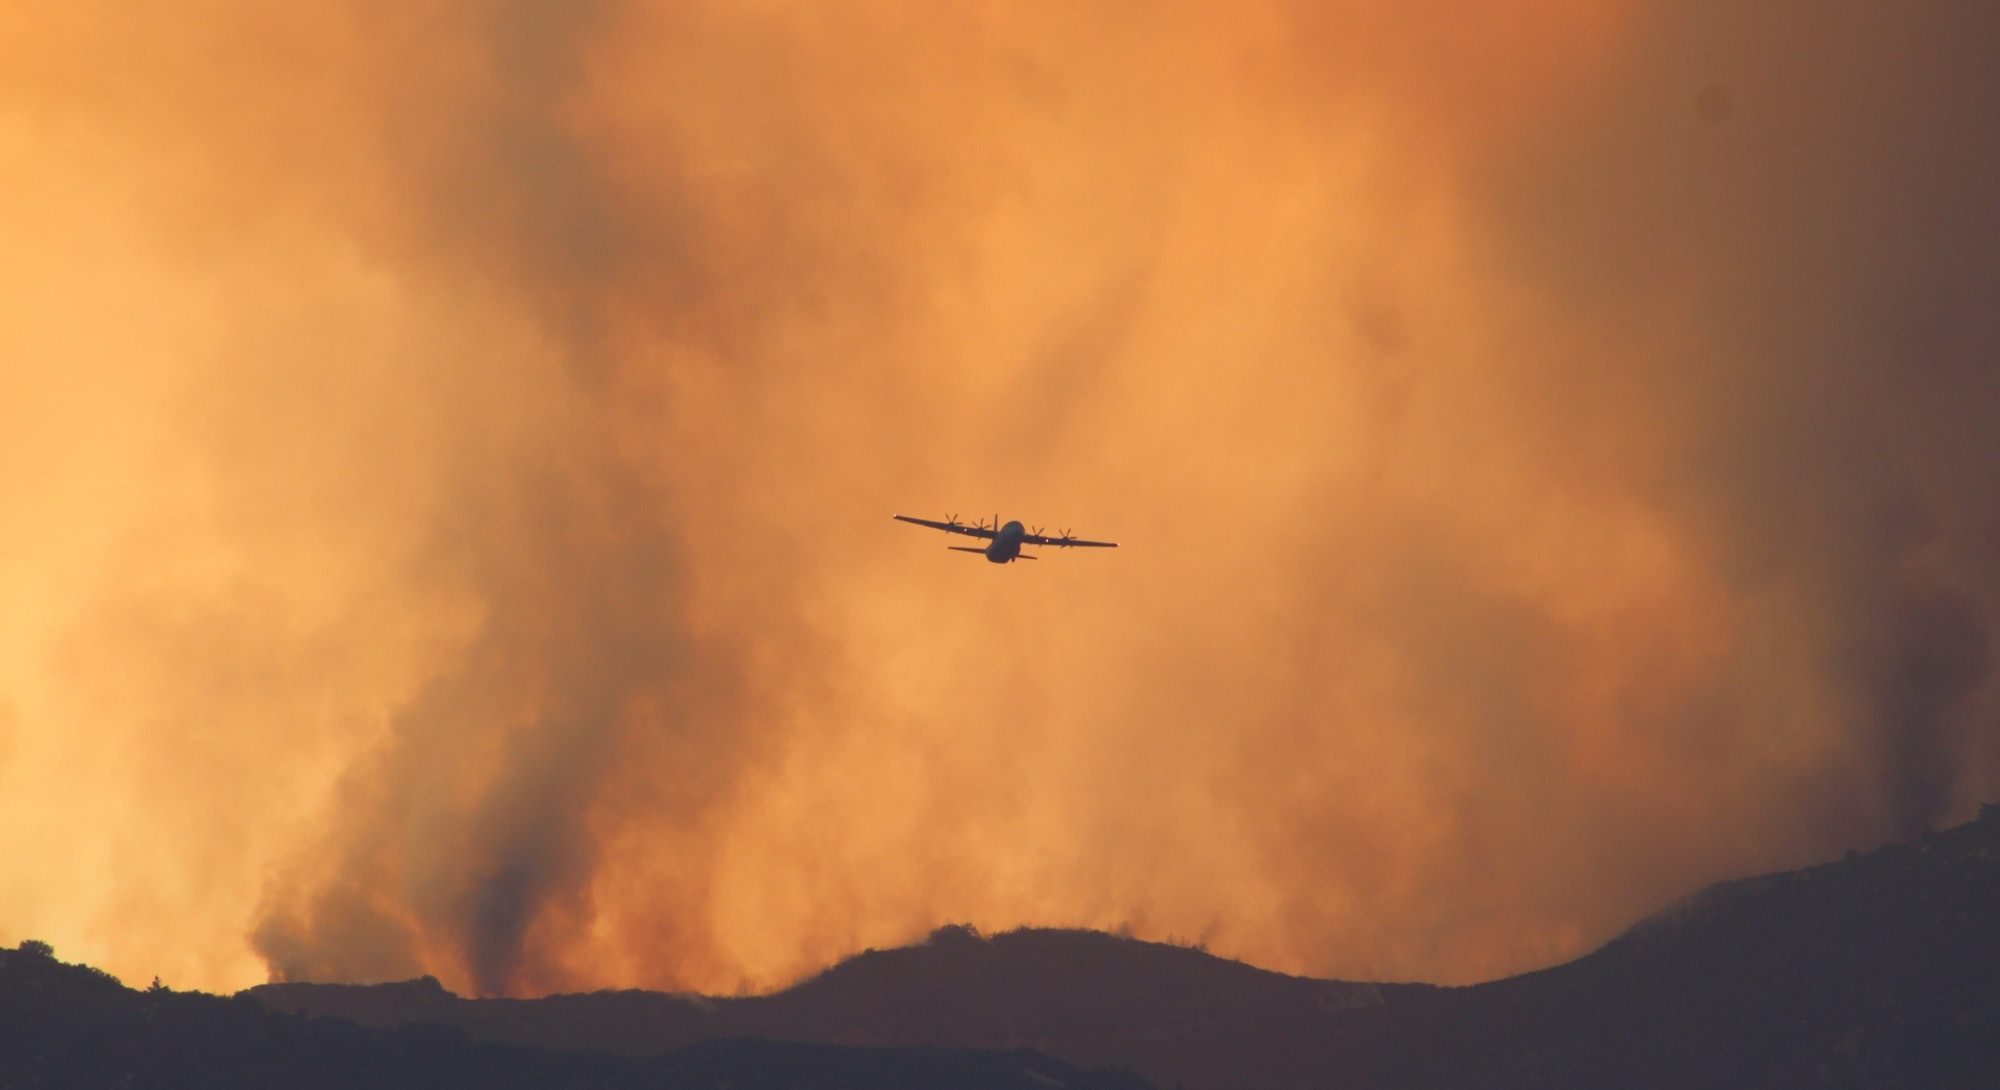 Low Angle View Of Silhouette Airplane Flying Against Sky During Wildfire